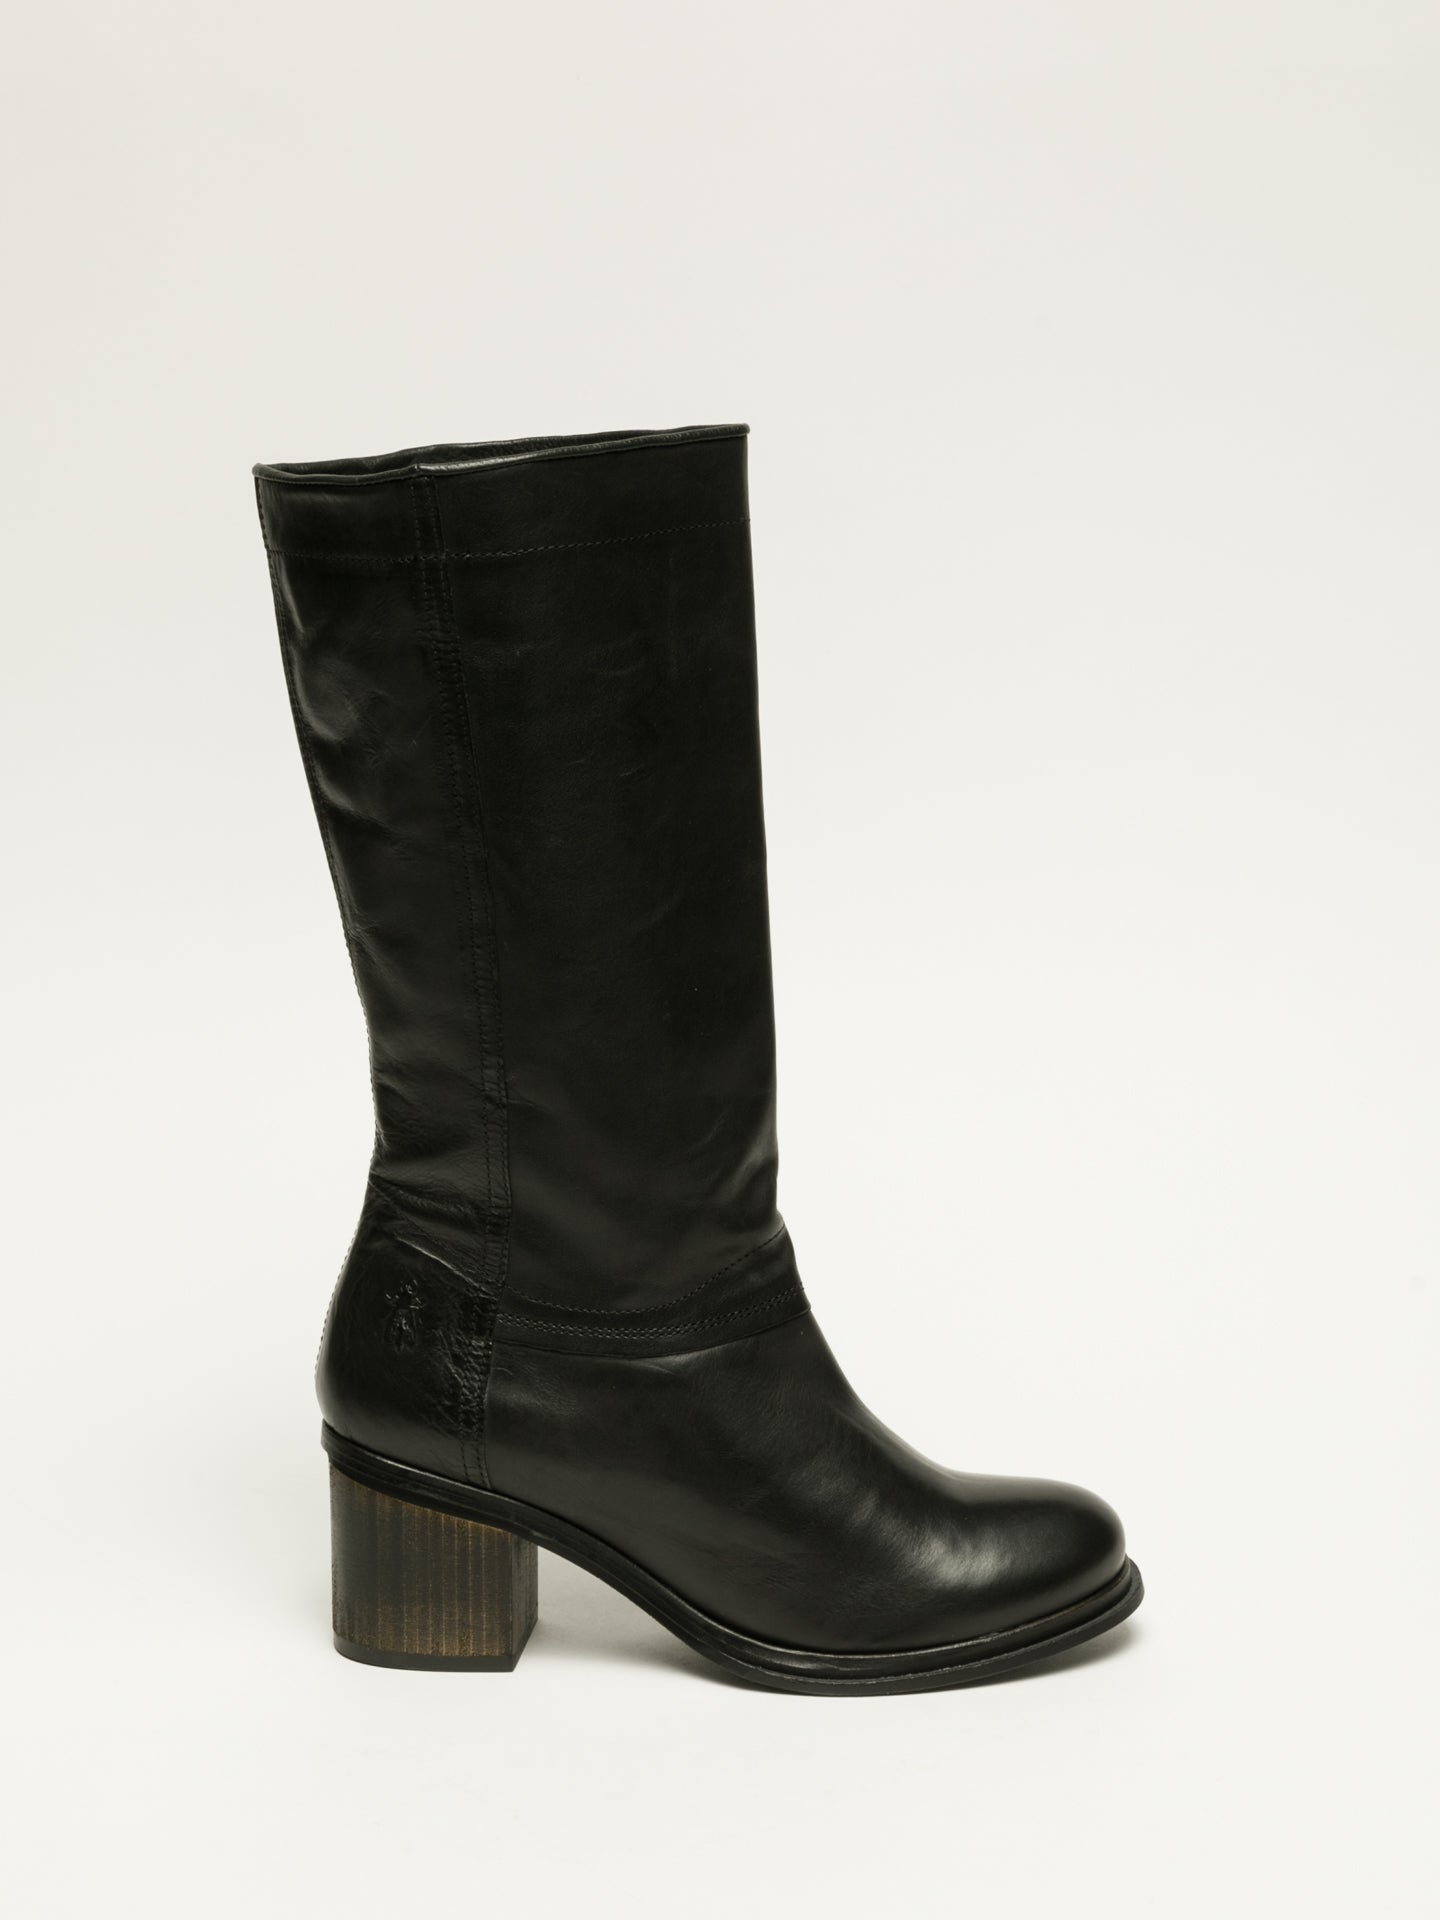 Fly London Botas Altas en color Negro